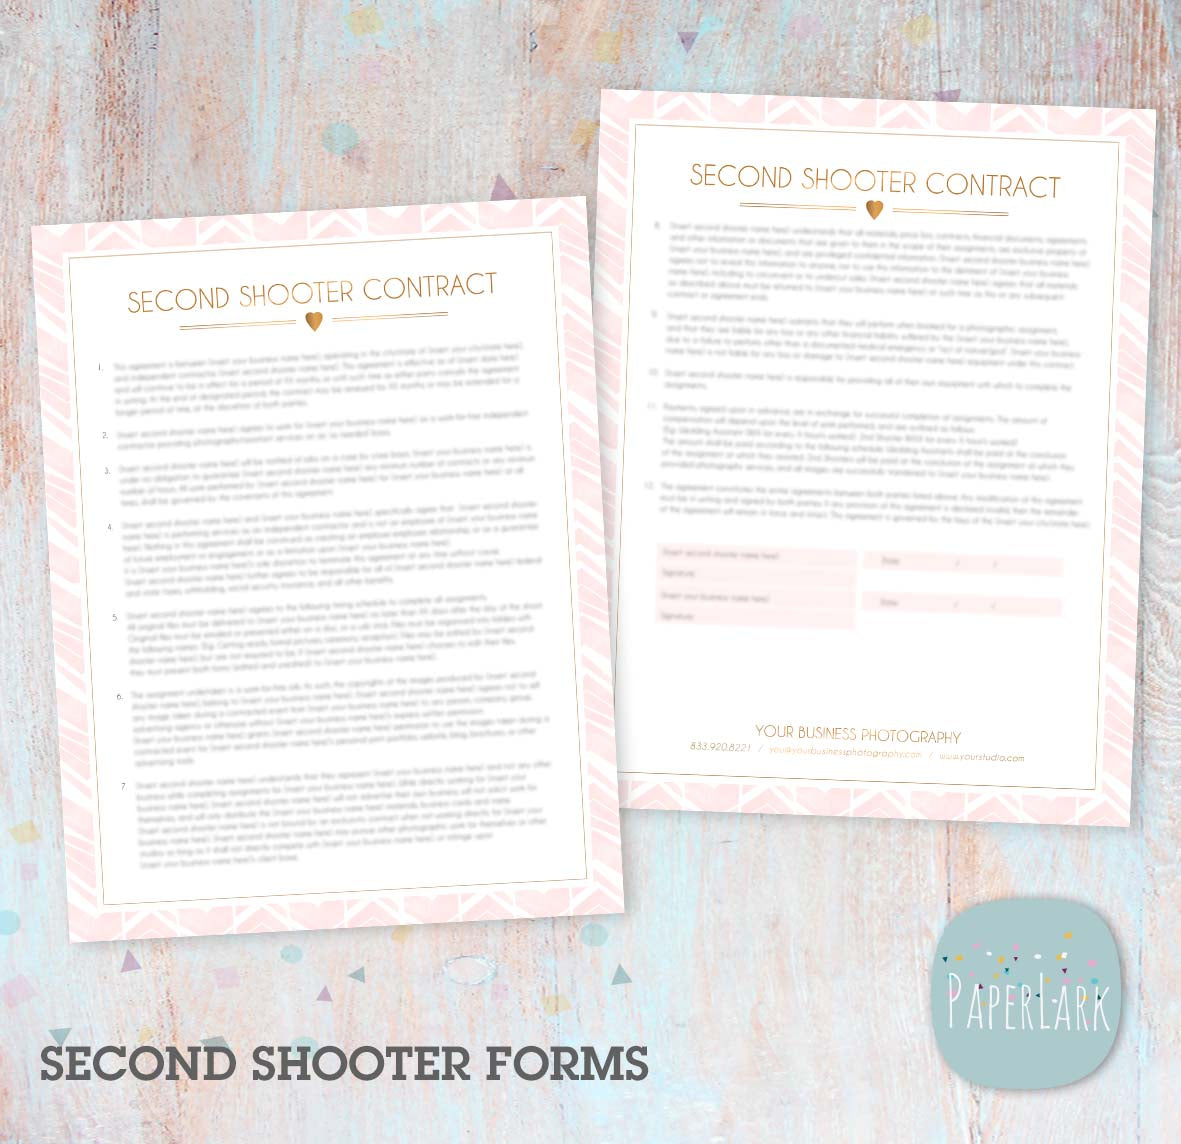 Second Shooter Photography Contract Ng042 Paper Lark Designs